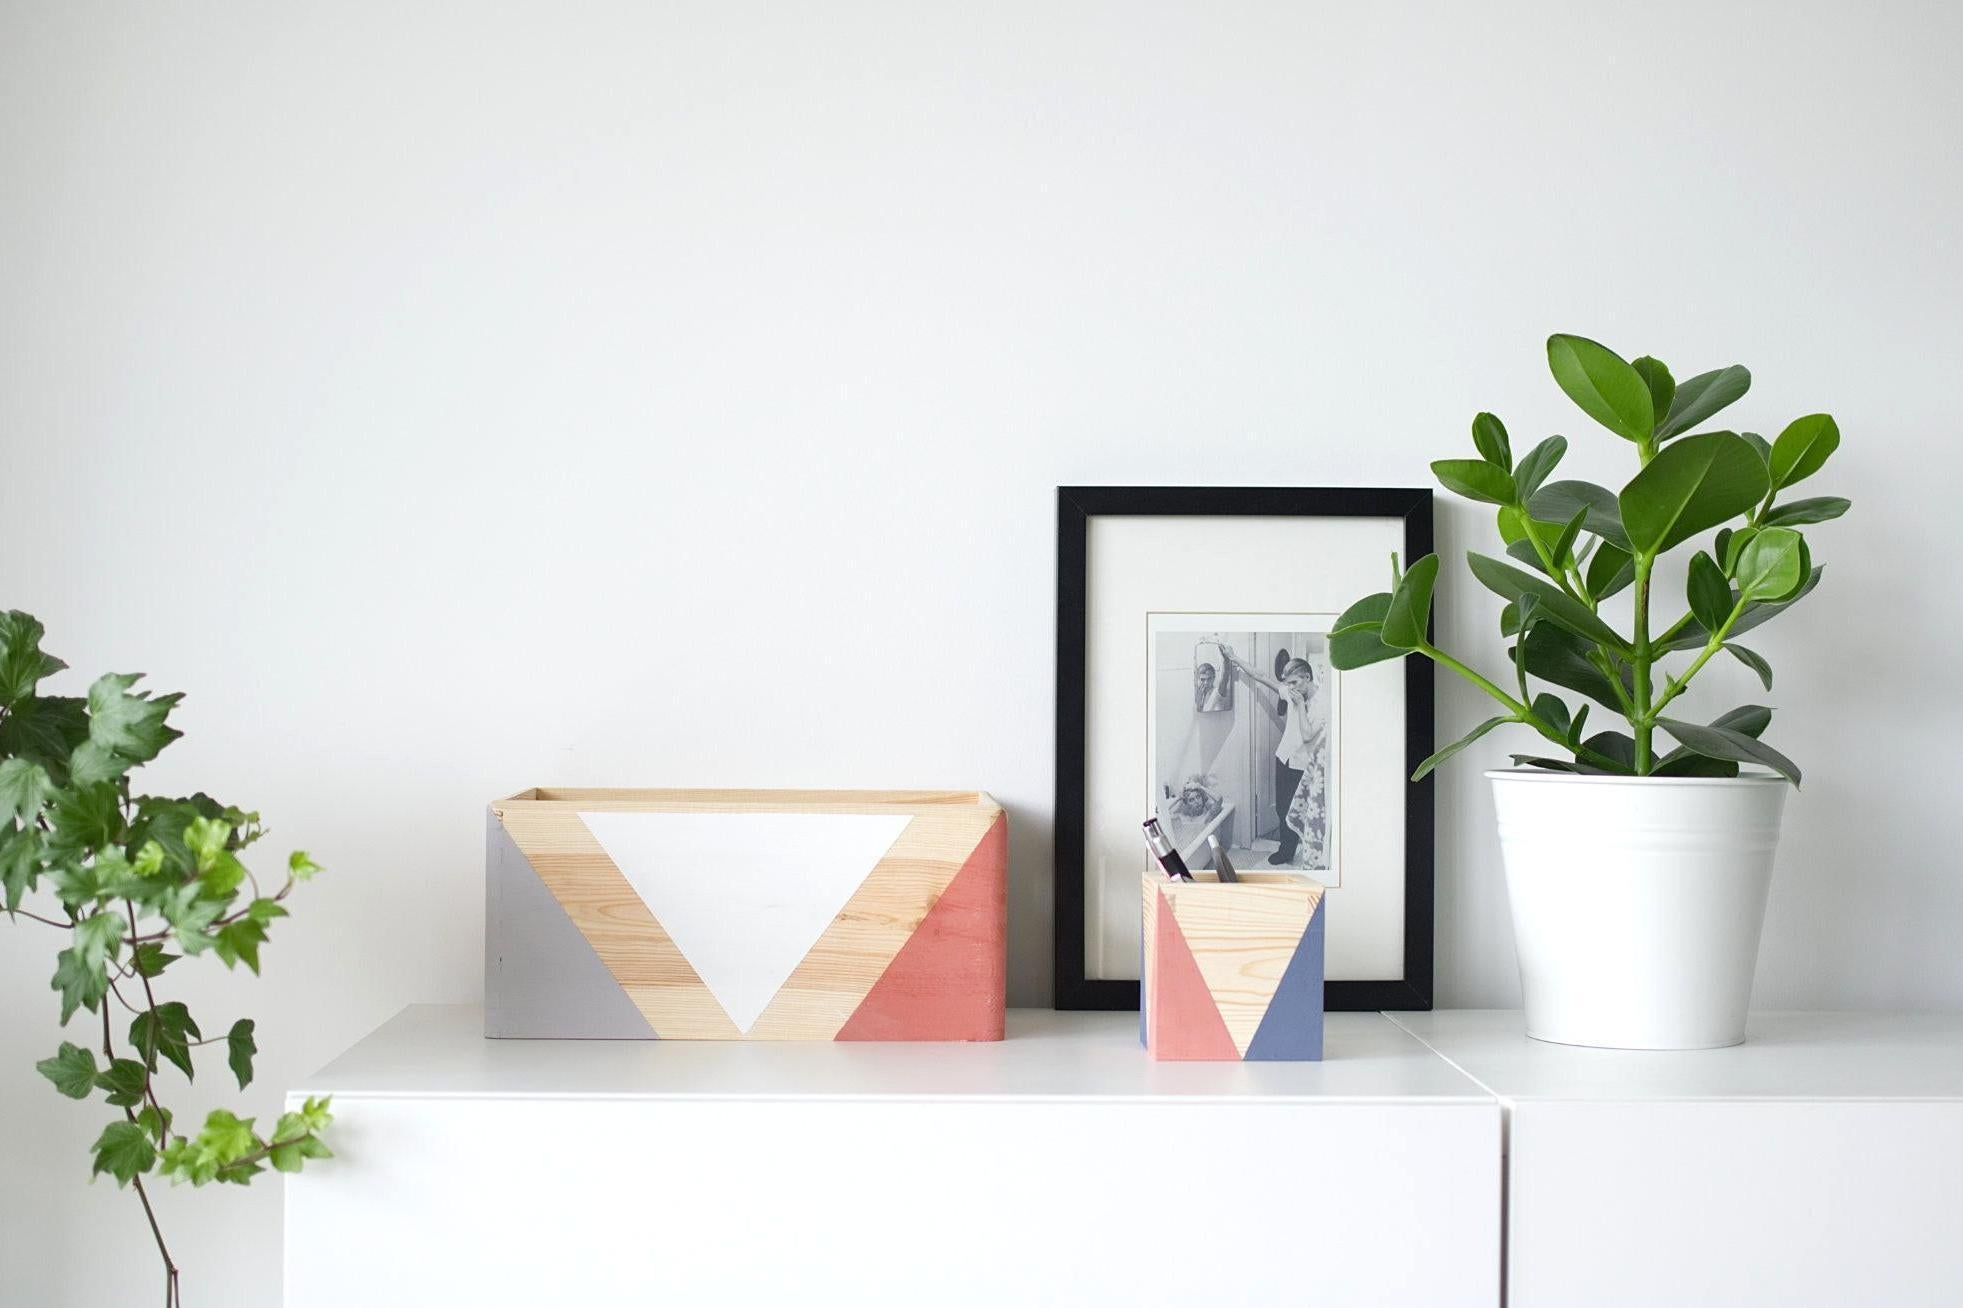 Annie Sloan and Etsy team up for limited-edition homeware collection | The Independentindependent_brand_ident_LOGOUntitled